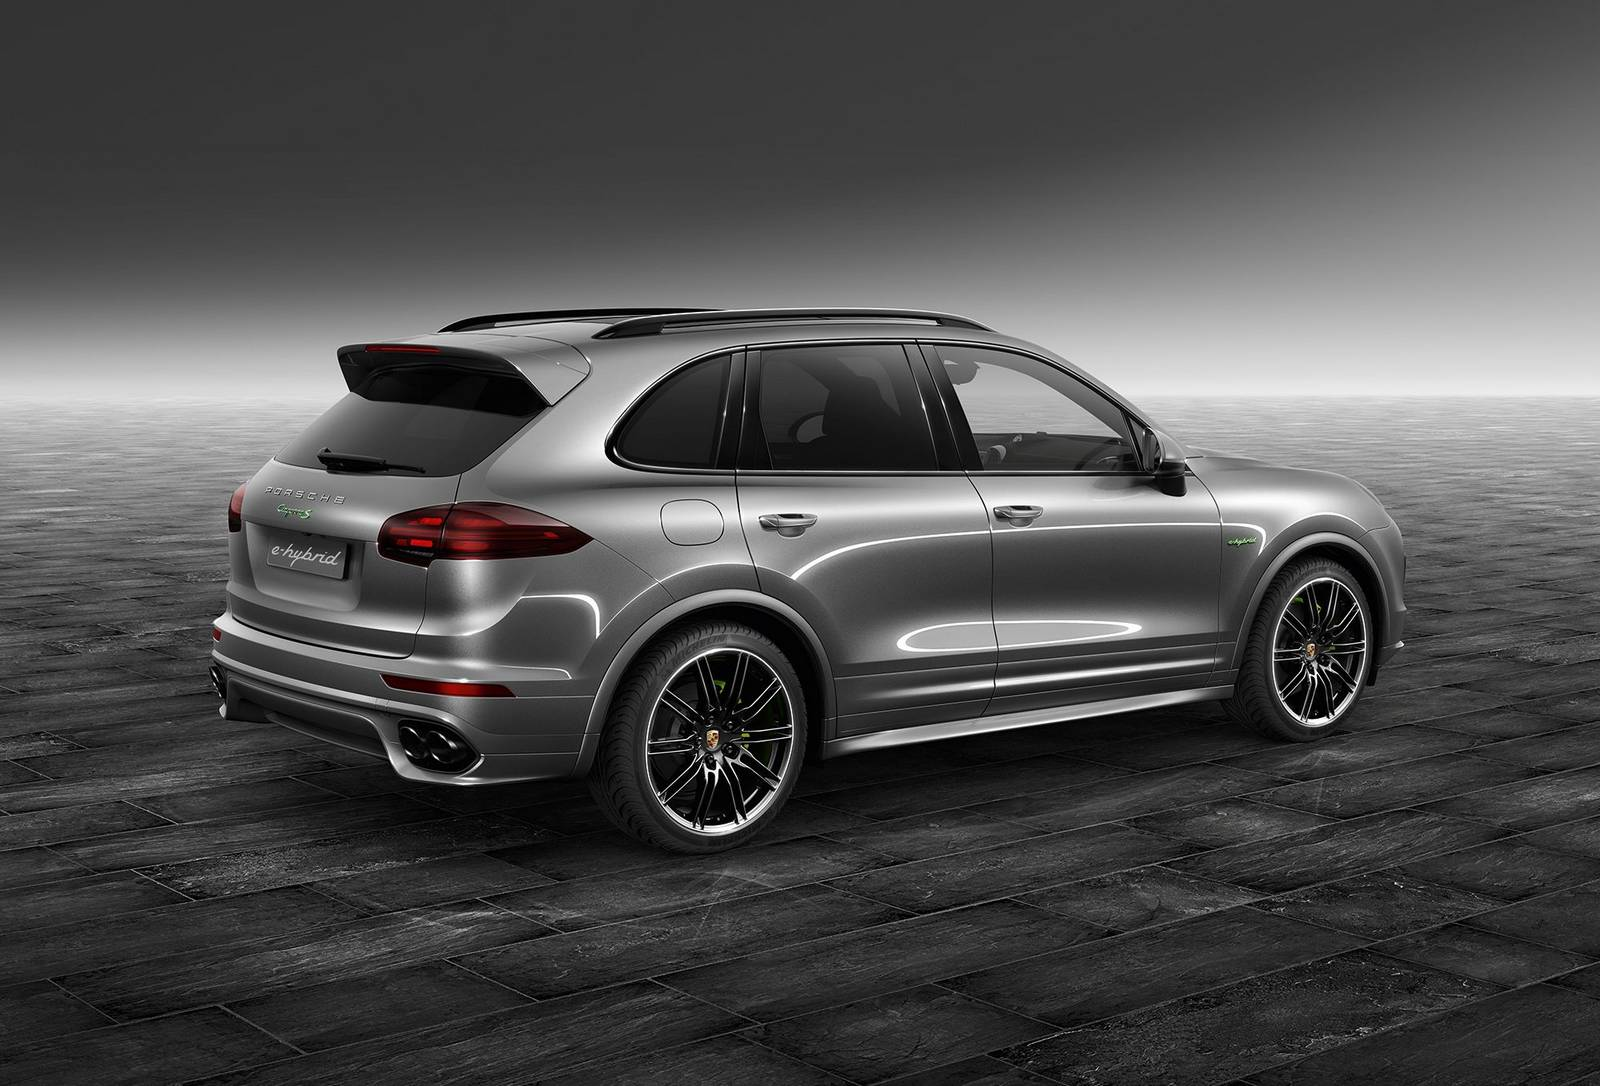 meteor grey metallic cayenne s e hybrid by porsche. Black Bedroom Furniture Sets. Home Design Ideas